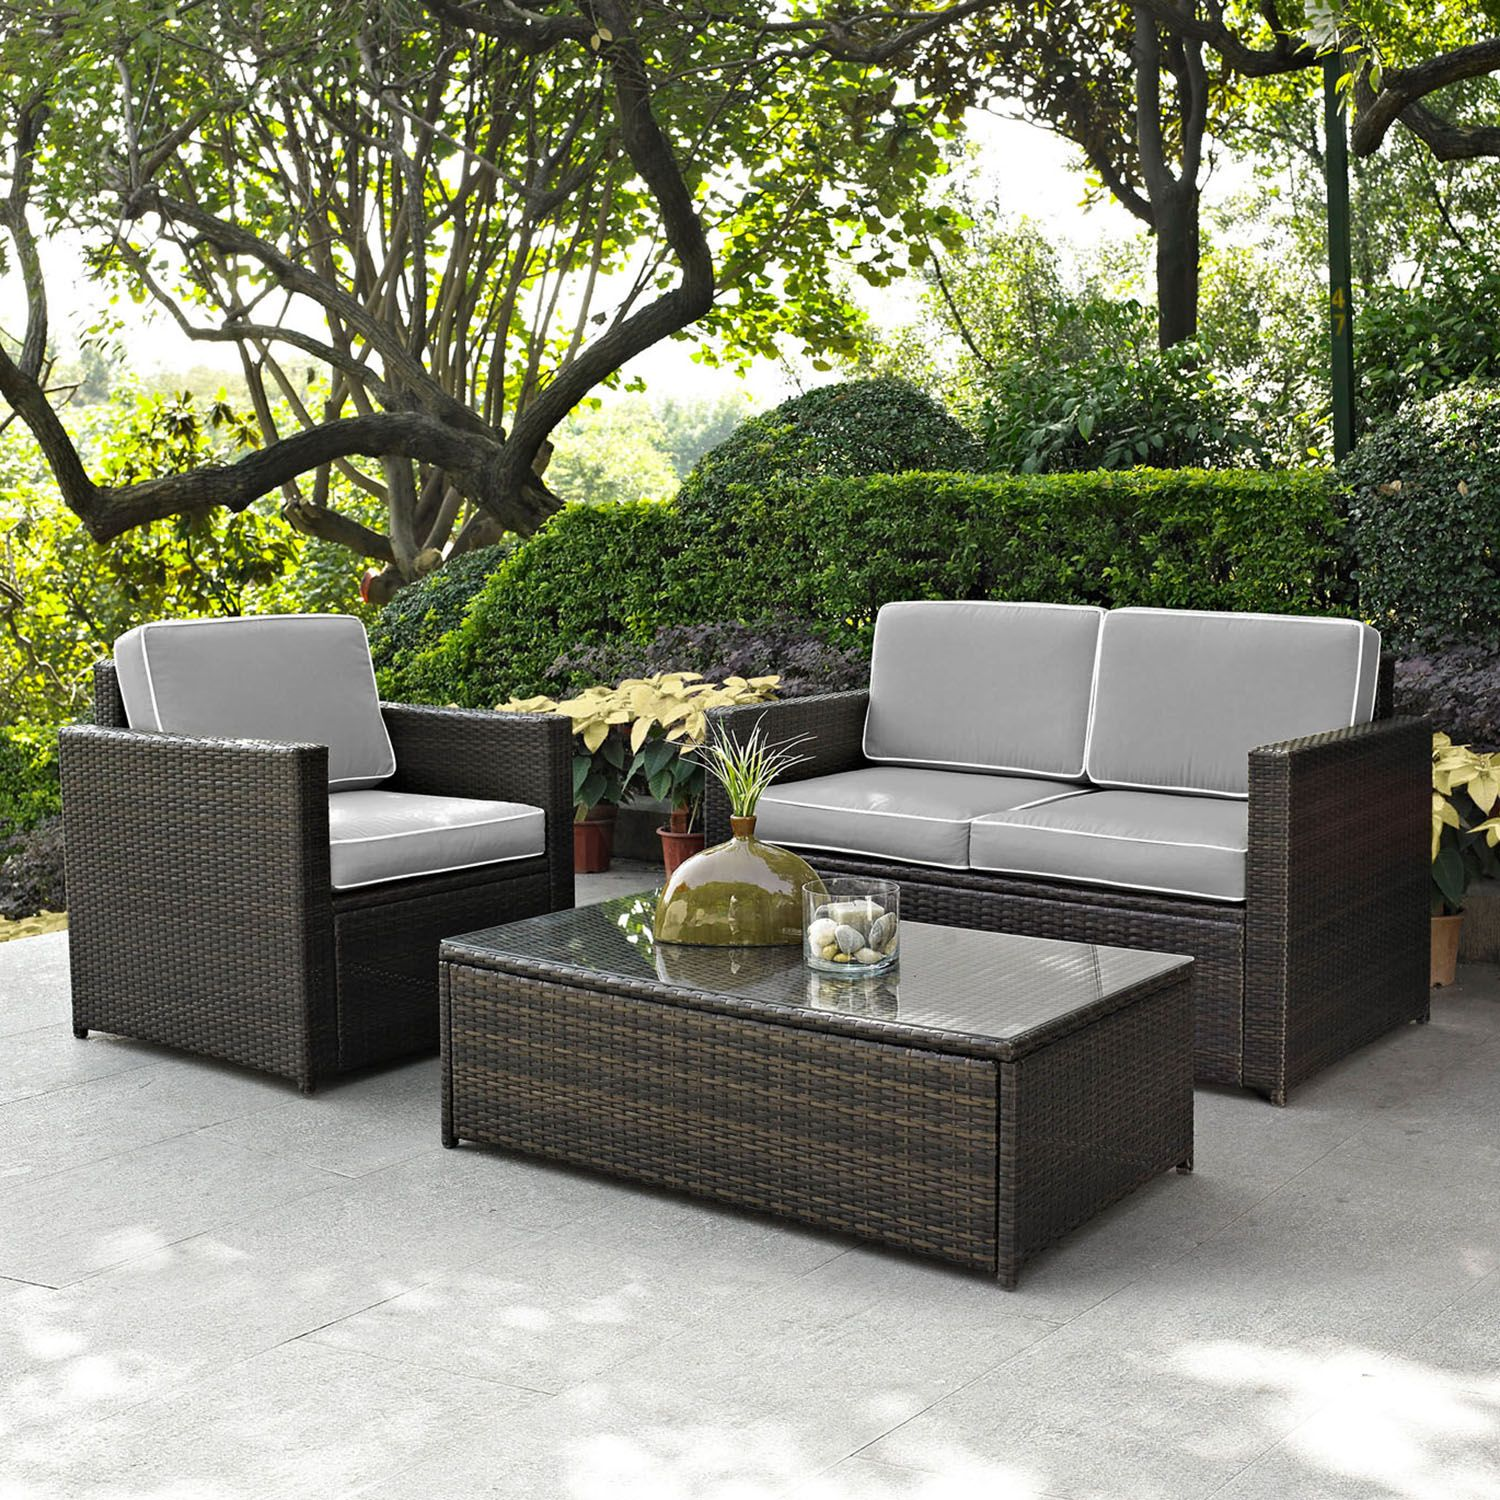 Merveilleux Crosley Furniture Palm Harbor Patio Loveseat, Arm Chair U0026 Coffee Table  3 Piece Set